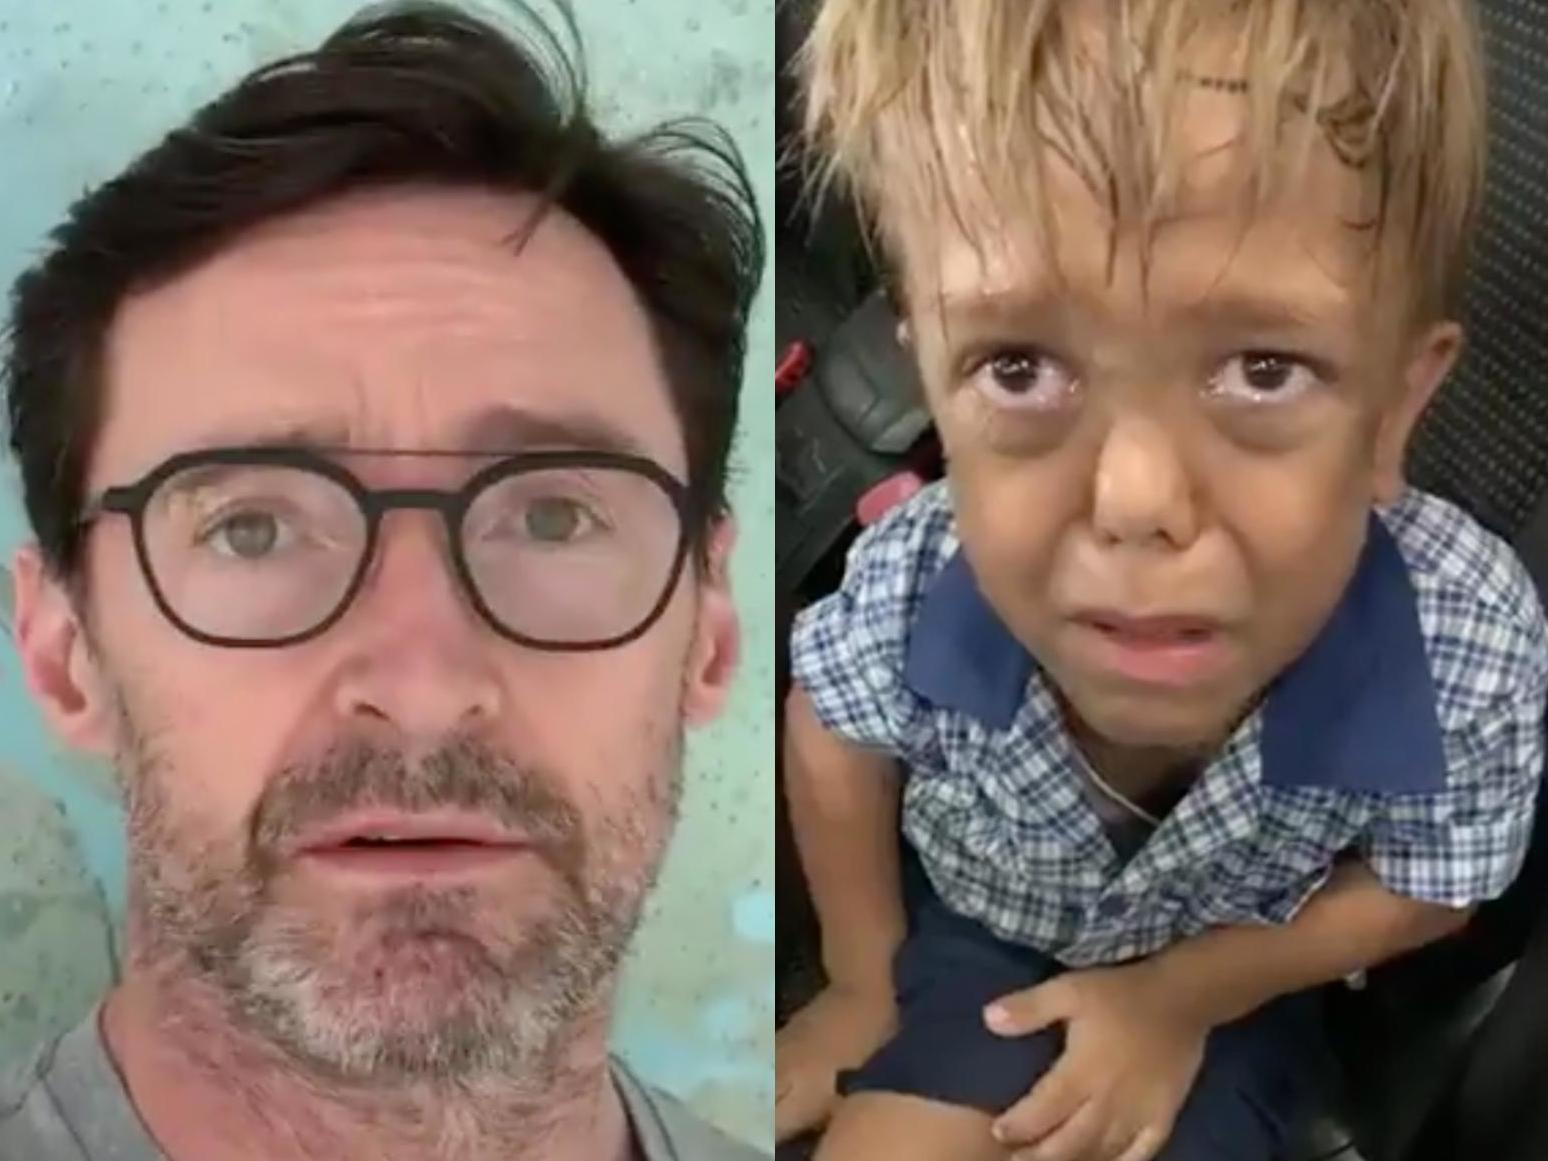 Hugh Jackman sends message of support to schoolboy bullied for dwarfism whose emotional video went viral